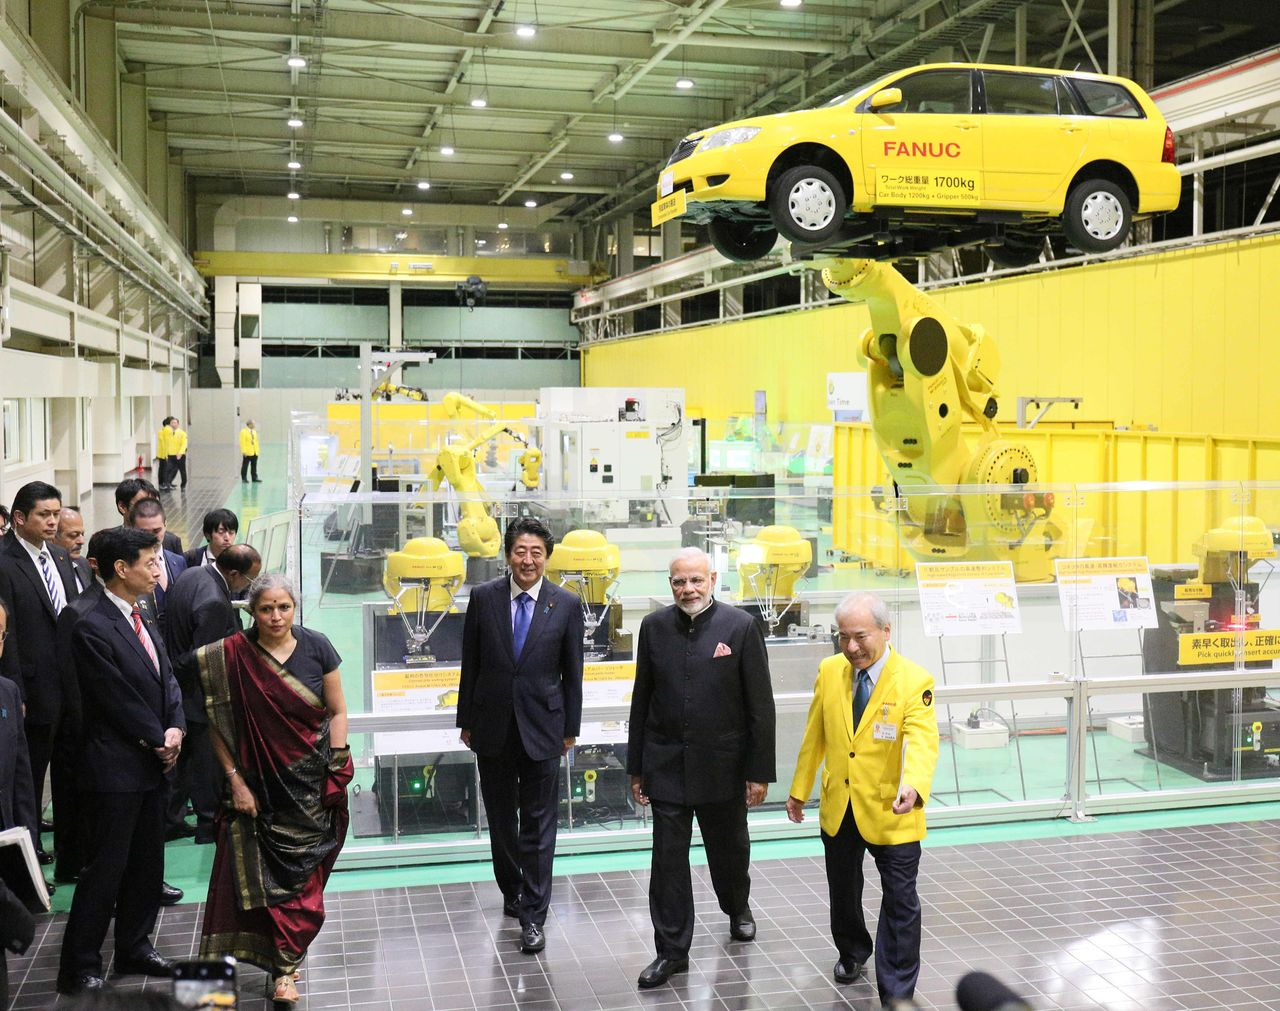 Abe Shinzō and Narendra Modi visit the Central Technical Center of Fanuc, a leader in the field of industrial robotics. Taken on October 28, 2018, in Oshino, Yamanashi Prefecture. (© Jiji)